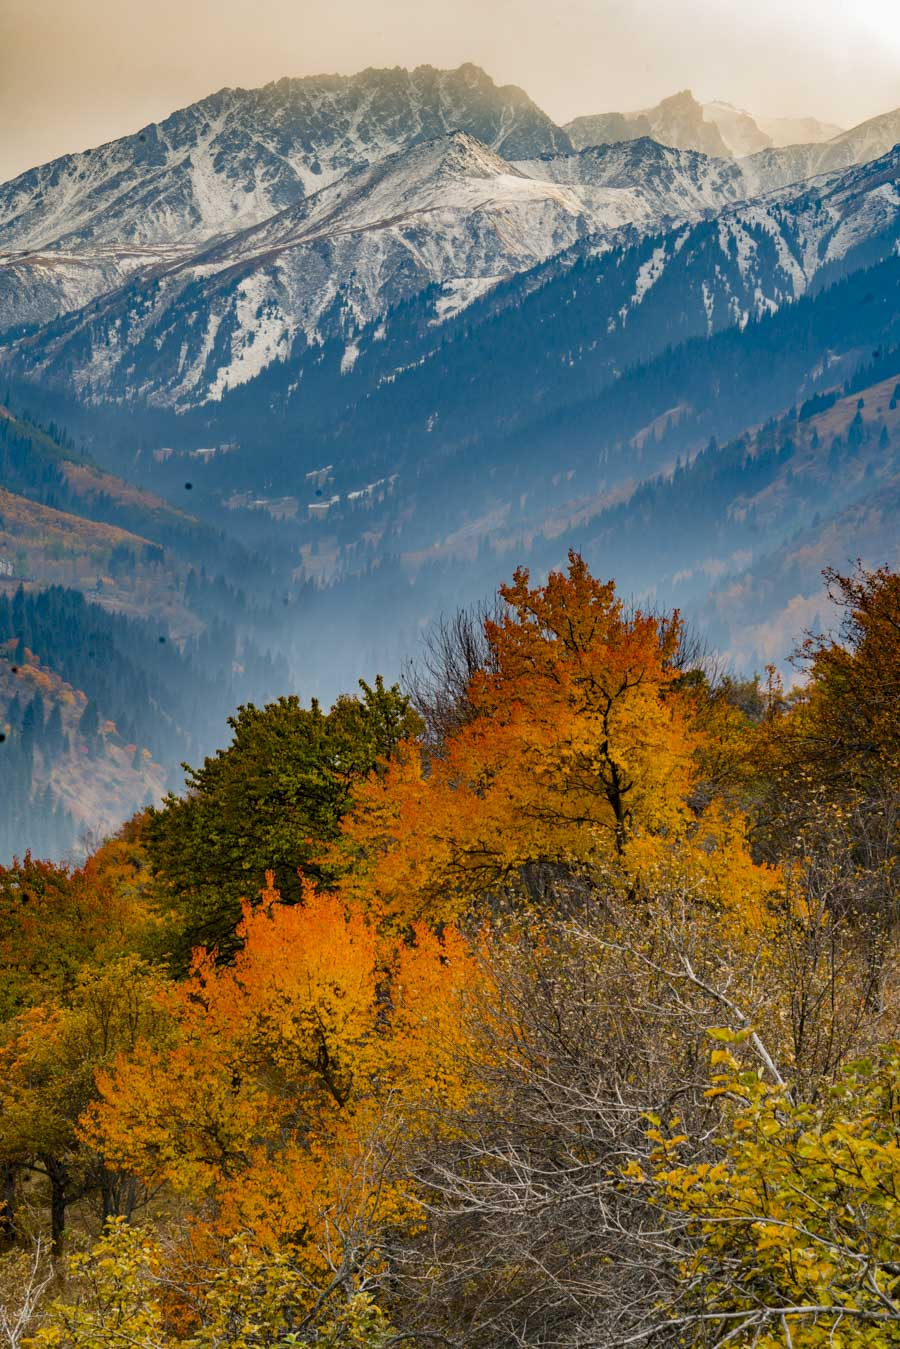 Fall color in Zailiyskiy Alatau Mountains, Photographed by Tom Till